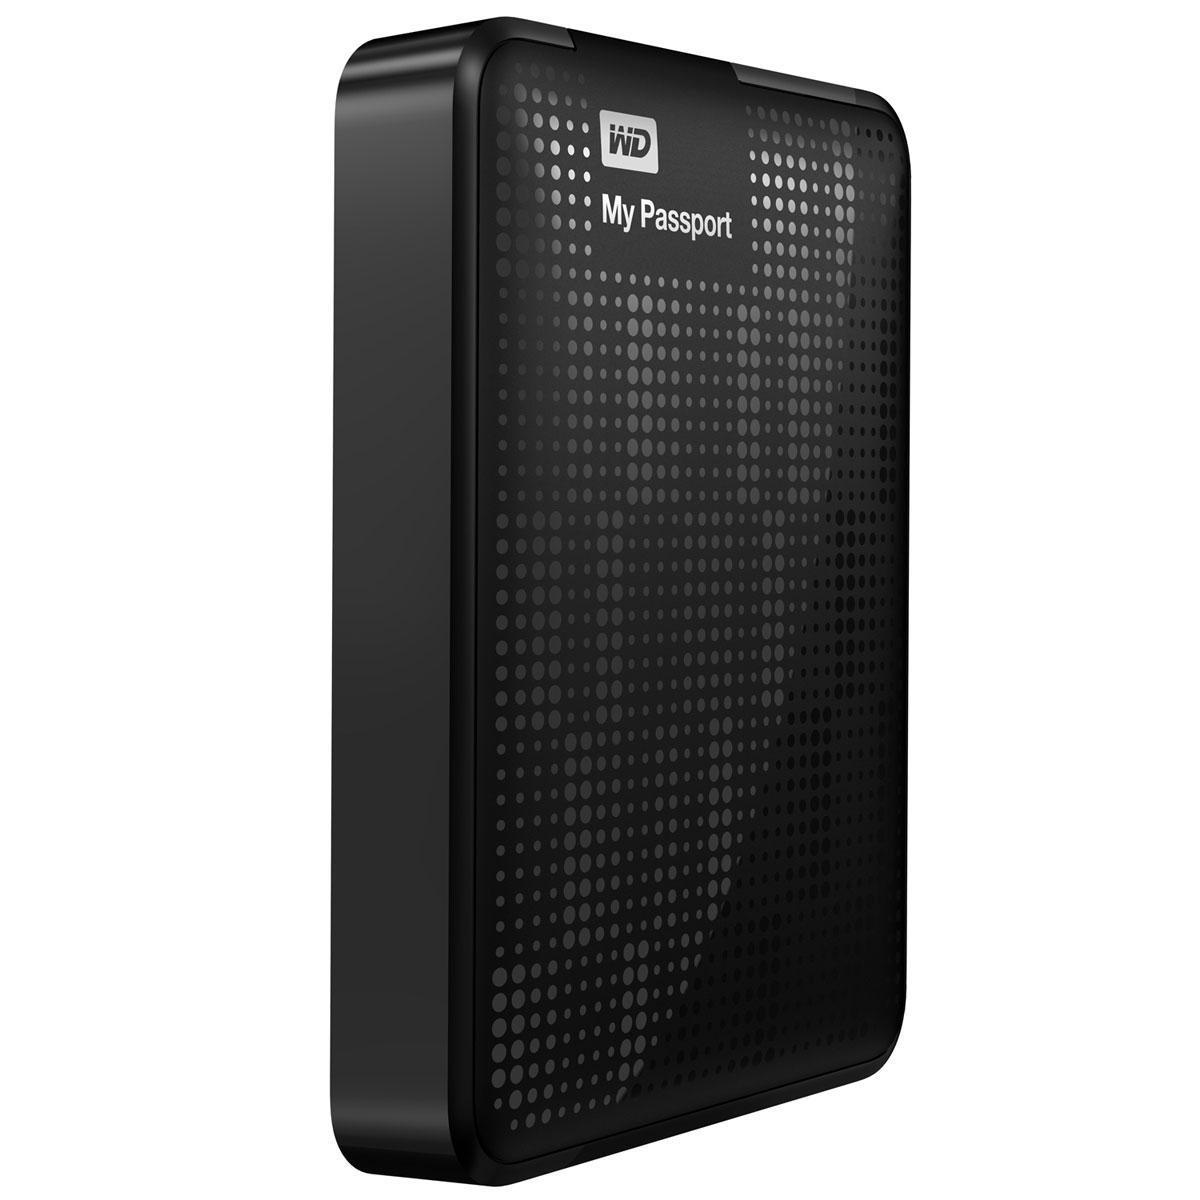 Disco duro externo 500 GB - Western Digital My Passport AV-TV - Negro